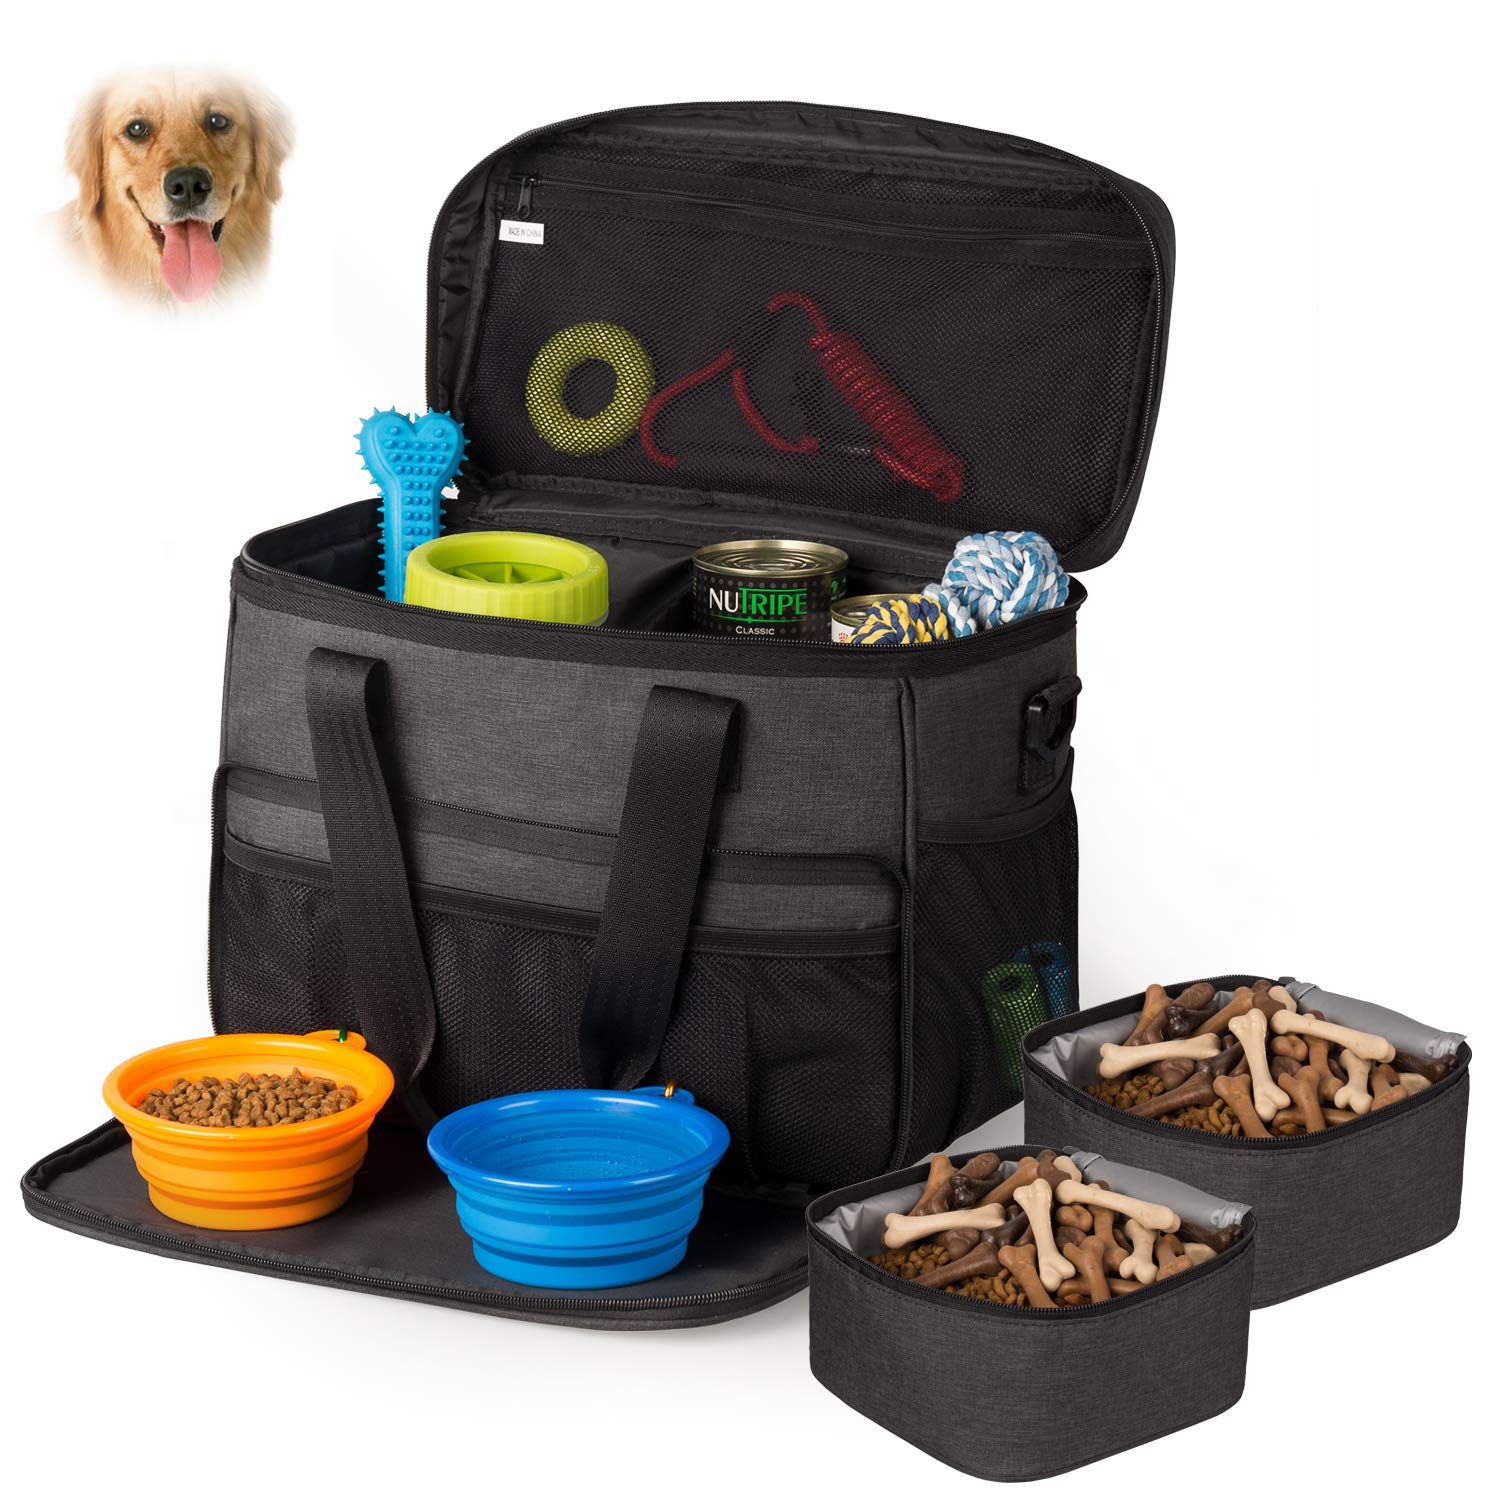 Hilike Pet Travel Bag for Dog&Cat -Weekend Tote Organizer Bag for Dogs Travel -Incudes1 Dog Tote Bag,2 Dog Food Carriers Bag,2 Pet Silicone Collapsible Bowls.(Black) by Unicreate